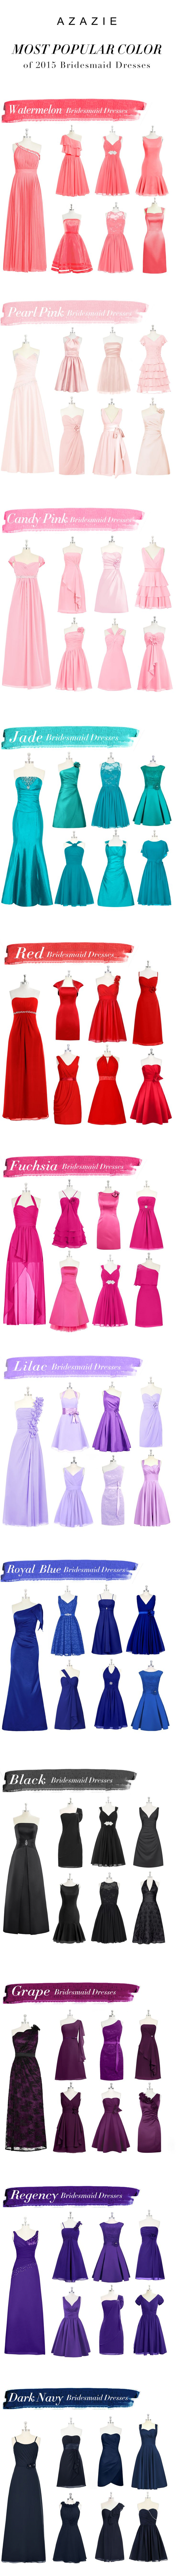 Azazie is the online destination for special occasion dresses. Find the perfect bridesmaid dresses, with over 300 styles in 32 colors on AZAZIE.  See more on the website: http://www.azazie.com/all/bridesmaid-dresses